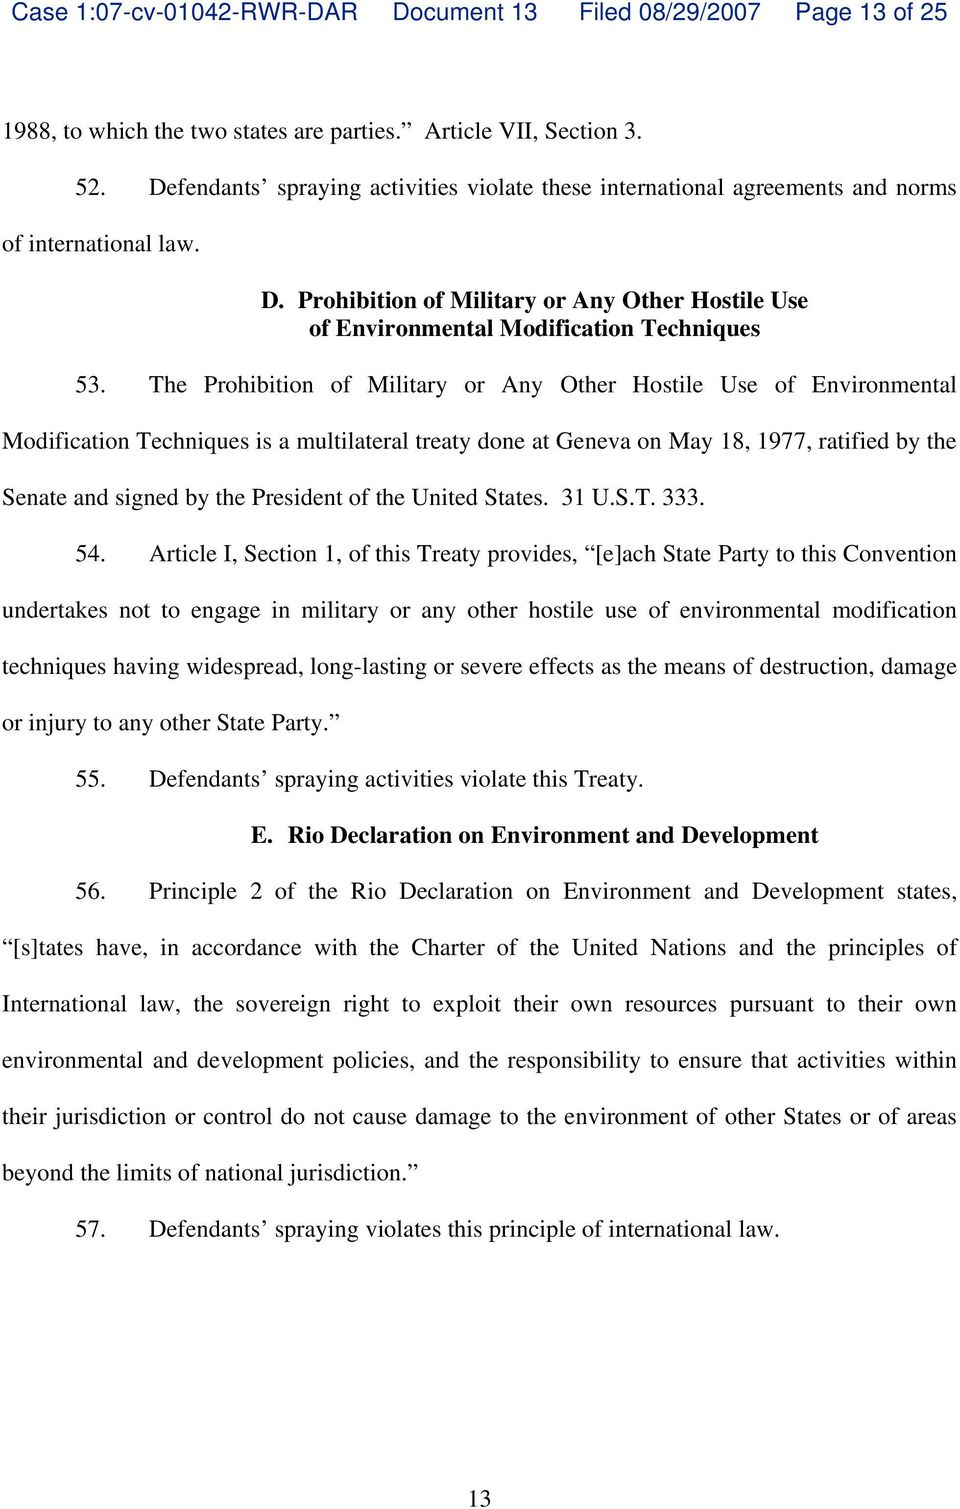 The Prohibition of Military or Any Other Hostile Use of Environmental Modification Techniques is a multilateral treaty done at Geneva on May 18, 1977, ratified by the Senate and signed by the